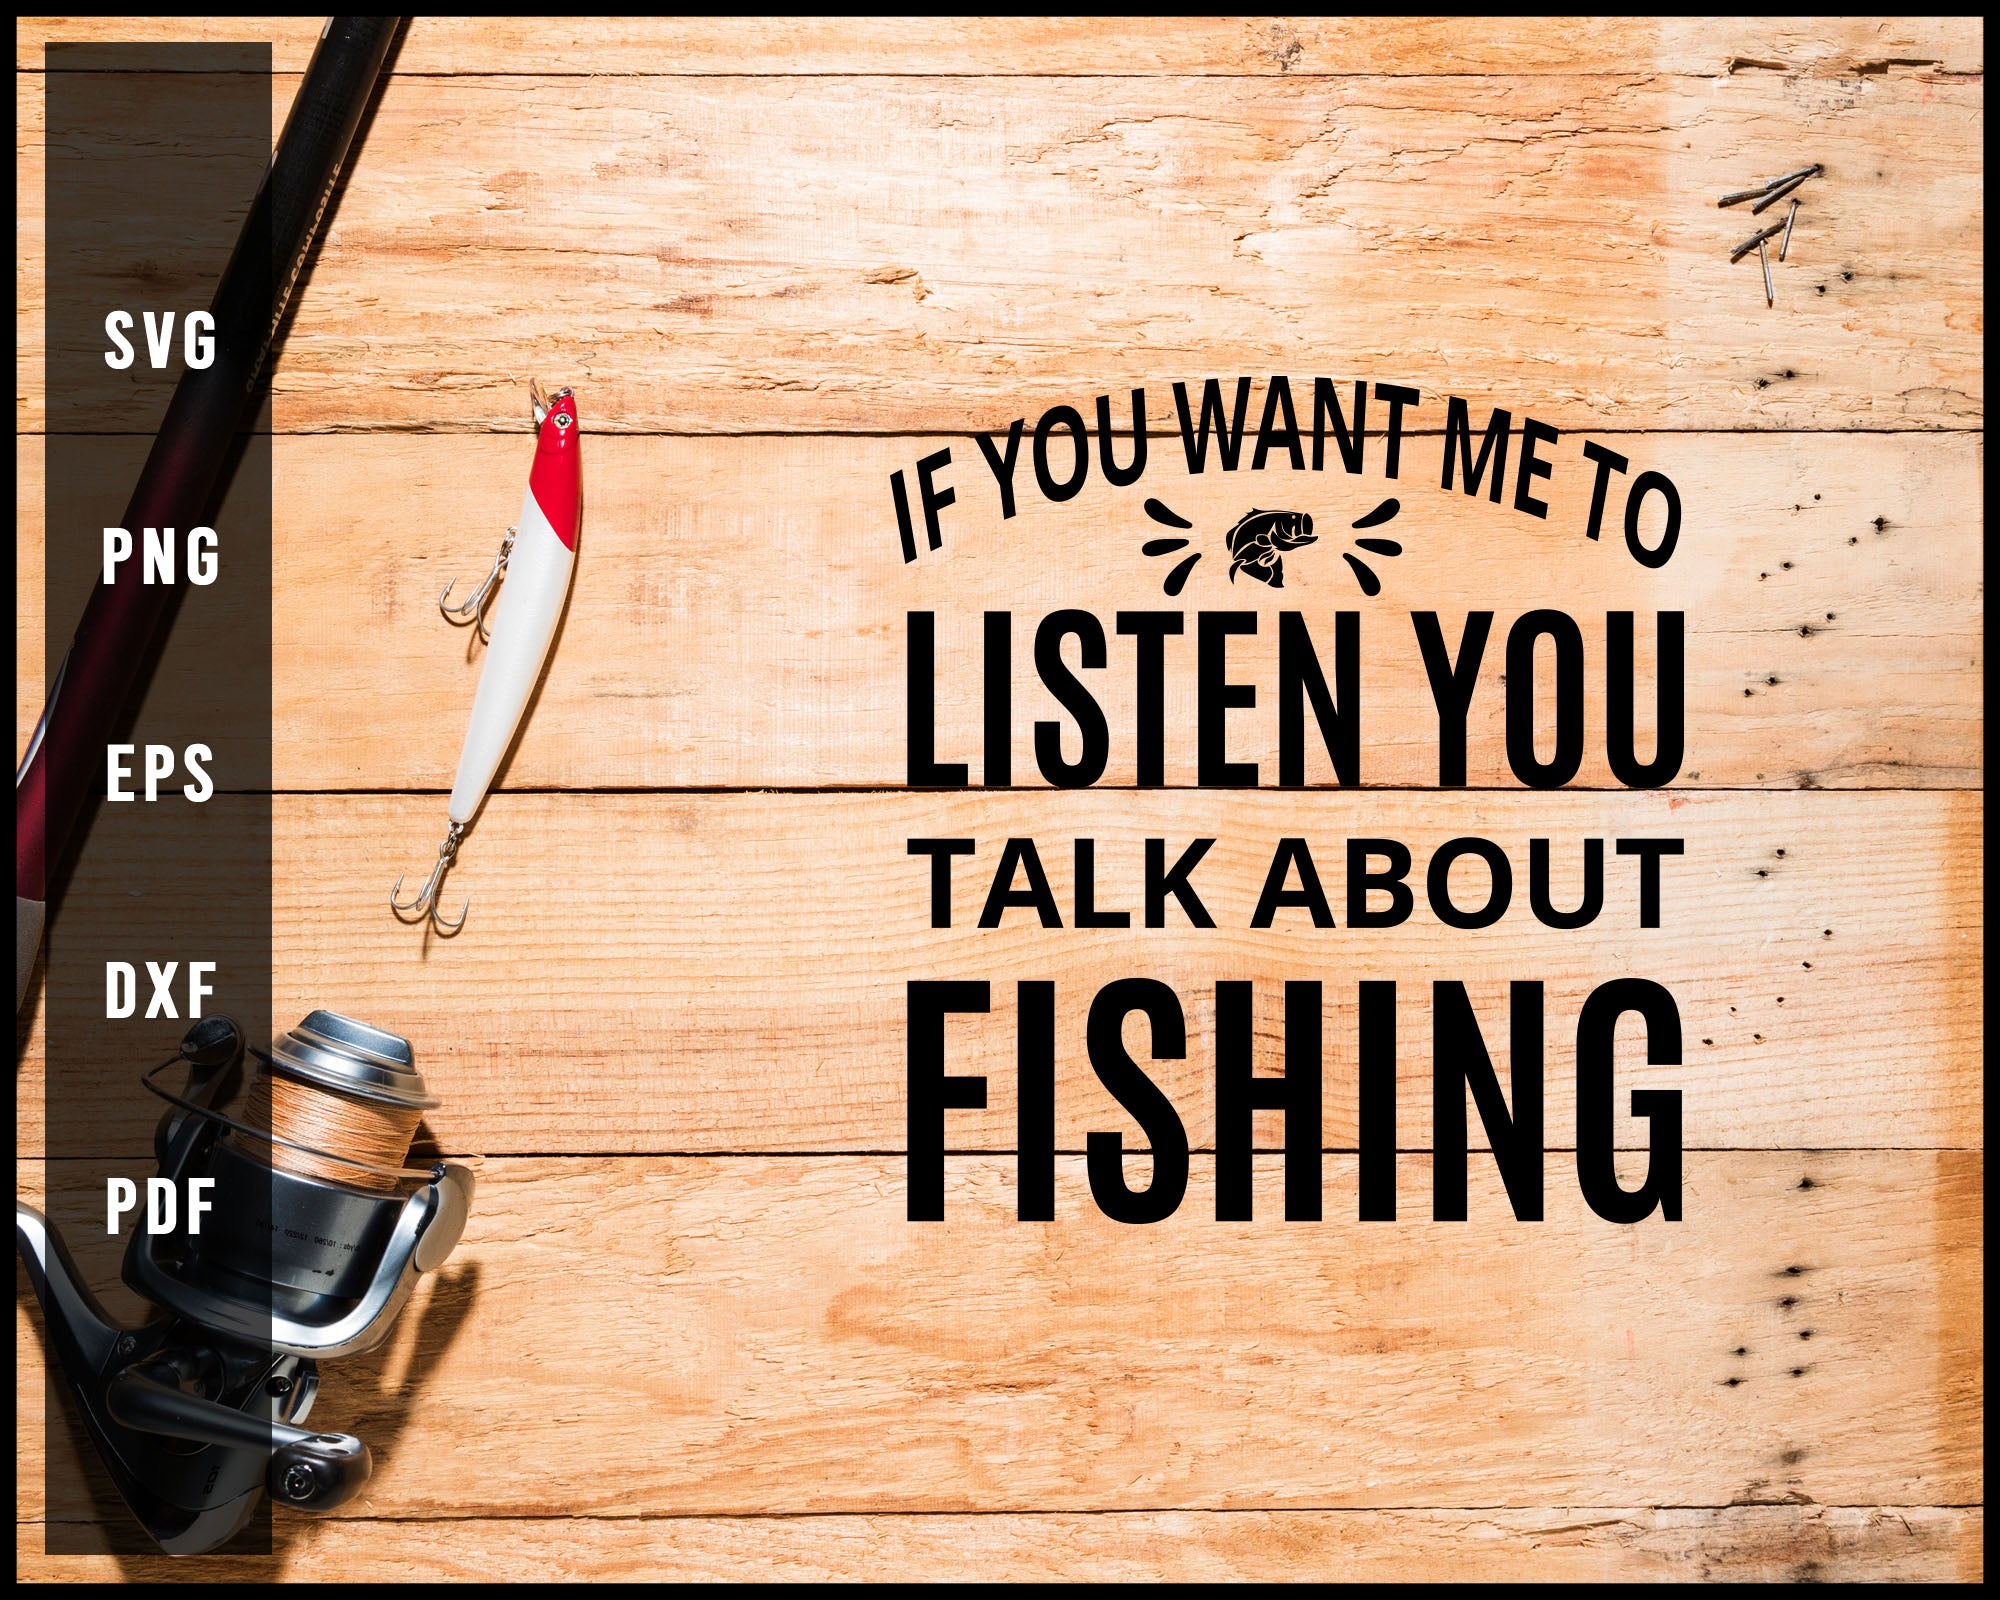 If You Want Me To Listen You Talk About Fishing svg png Silhouette Designs For Cricut And Printable Files